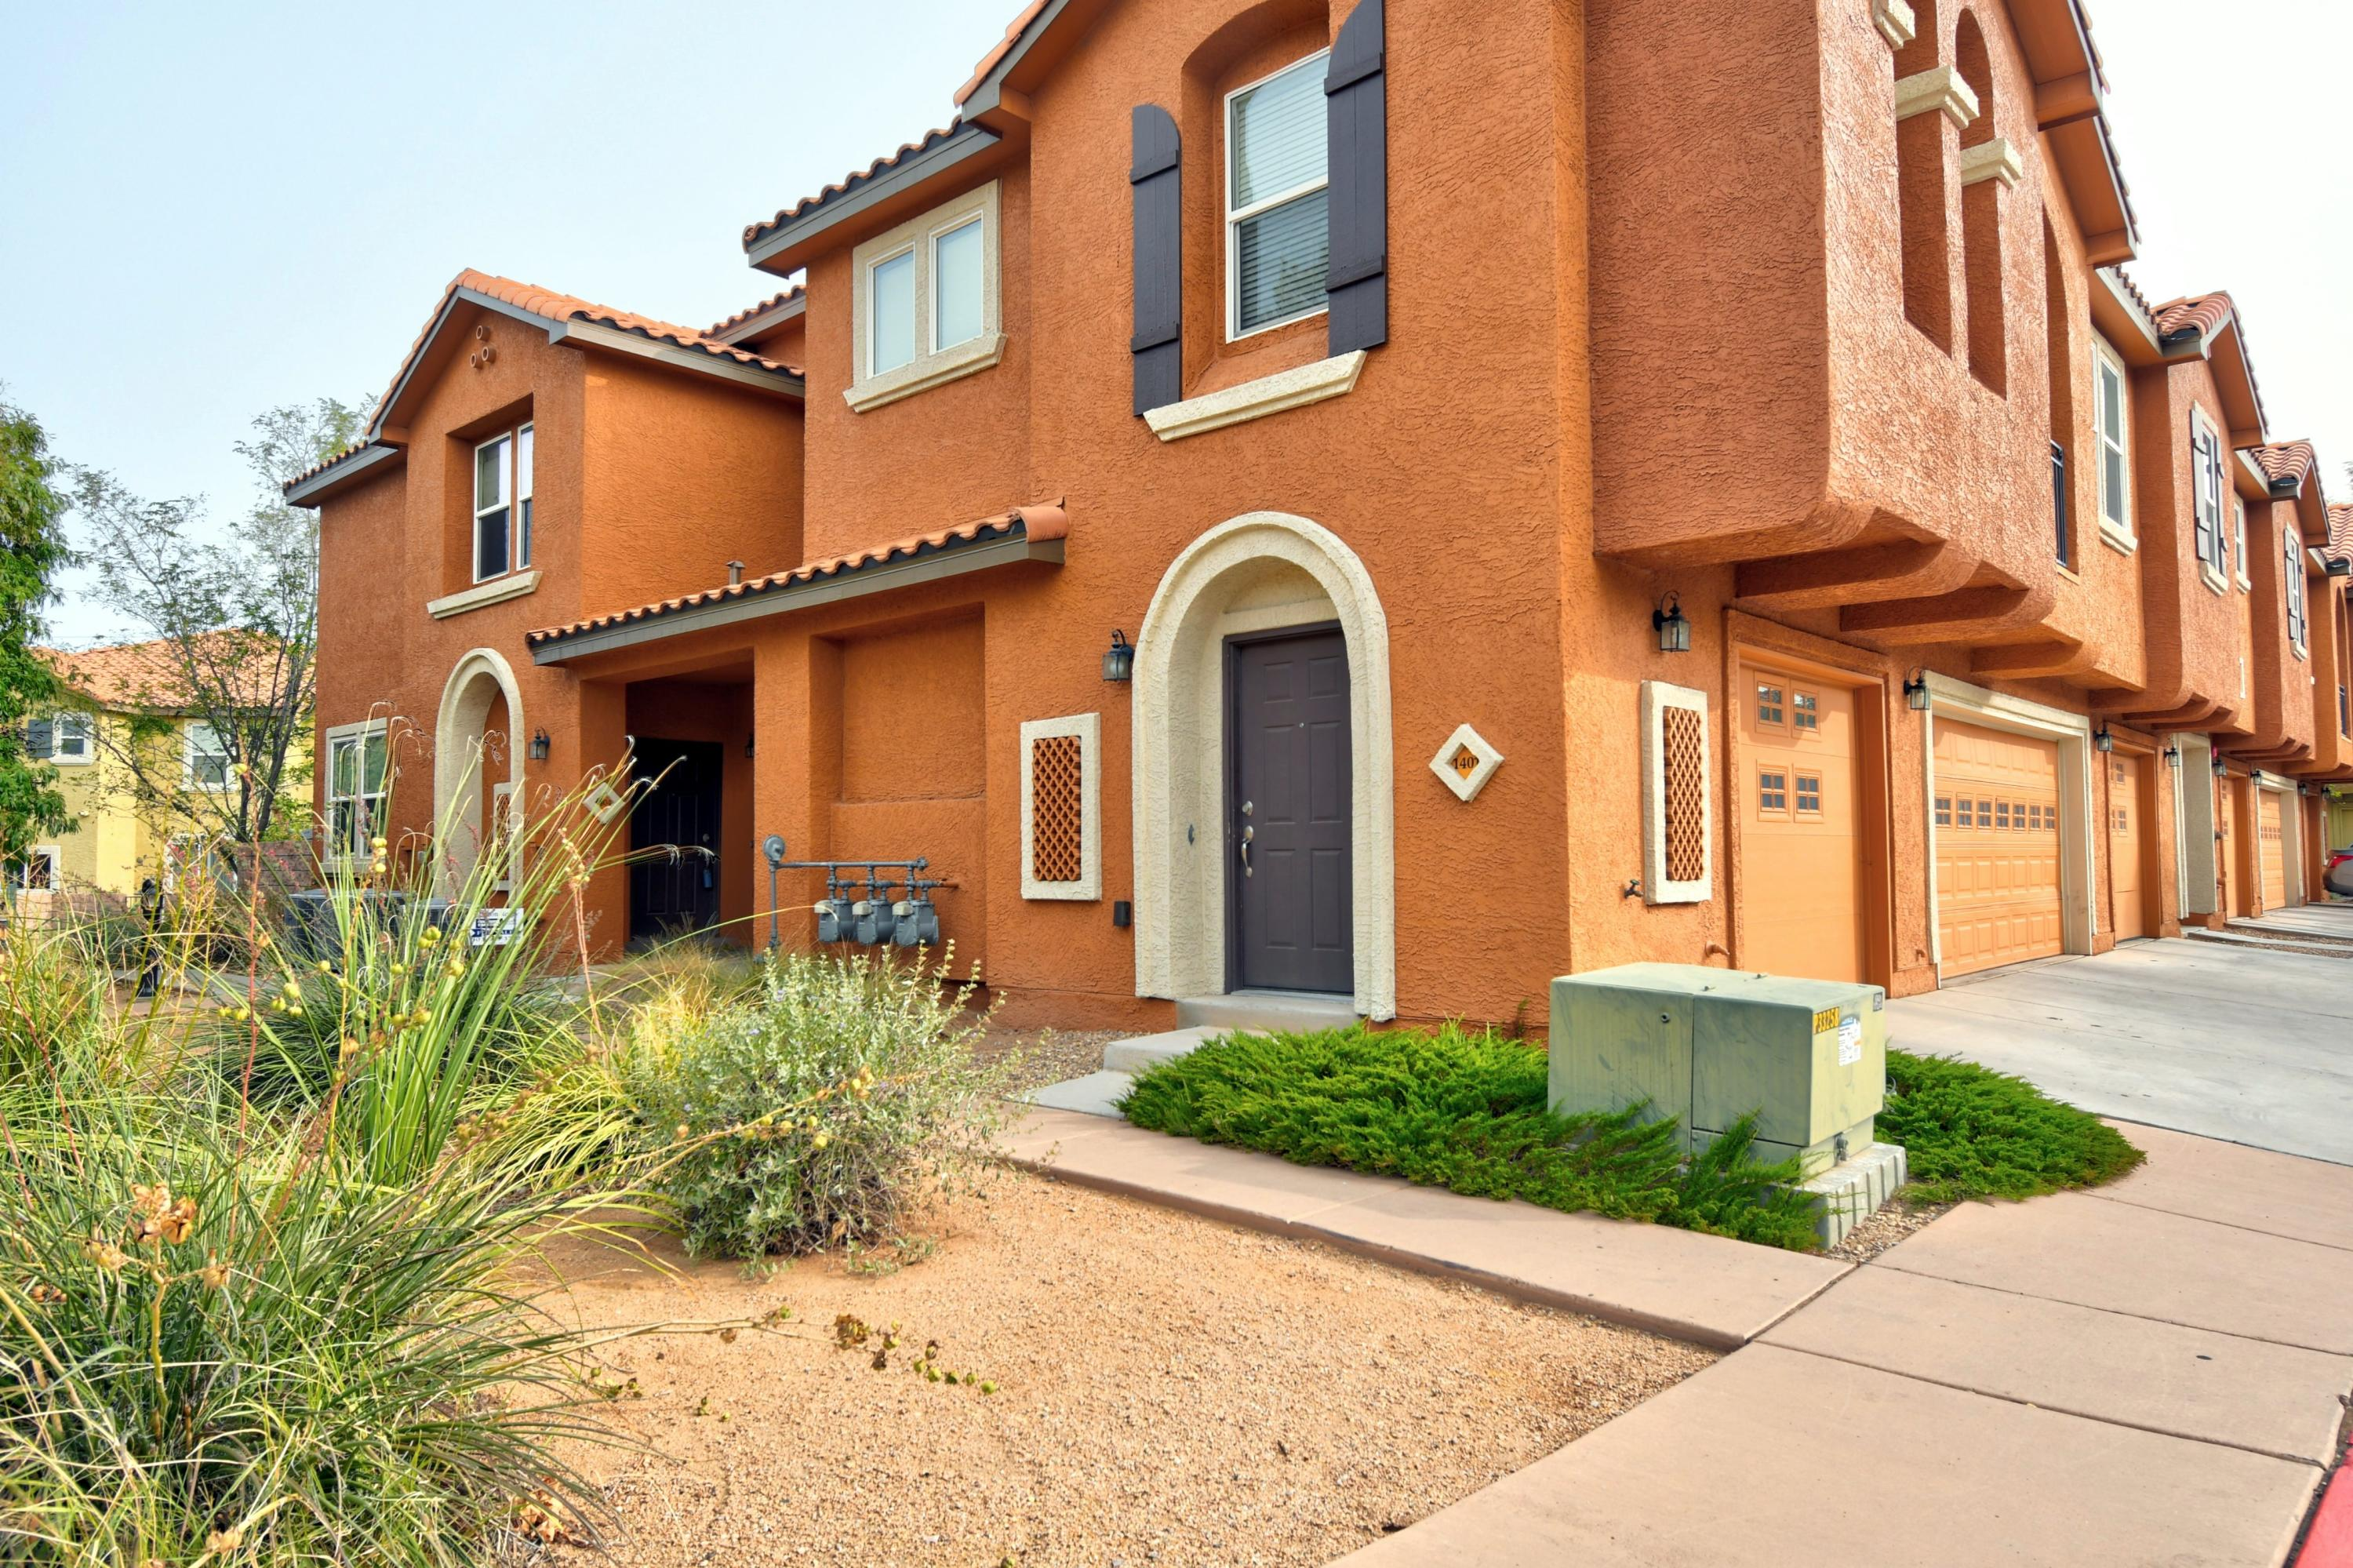 This townhome, located in the pristine Villas at Menaul, is surely one of the best in the community. Quick walking access to the pool, club house and community area and close additional parking make this unit very convenient and desirable. Two car heated garage.  Very large and inviting downstairs living and dining areas. Spacious master bedroom with garden tub and large walk-in closet. Large upstairs loft is perfect for second living area or optional third bedroom. Access to grass area from back patio and a doggy door perfectly equips this unit for owners with pets. Community pool and clubhouse seasonally available.